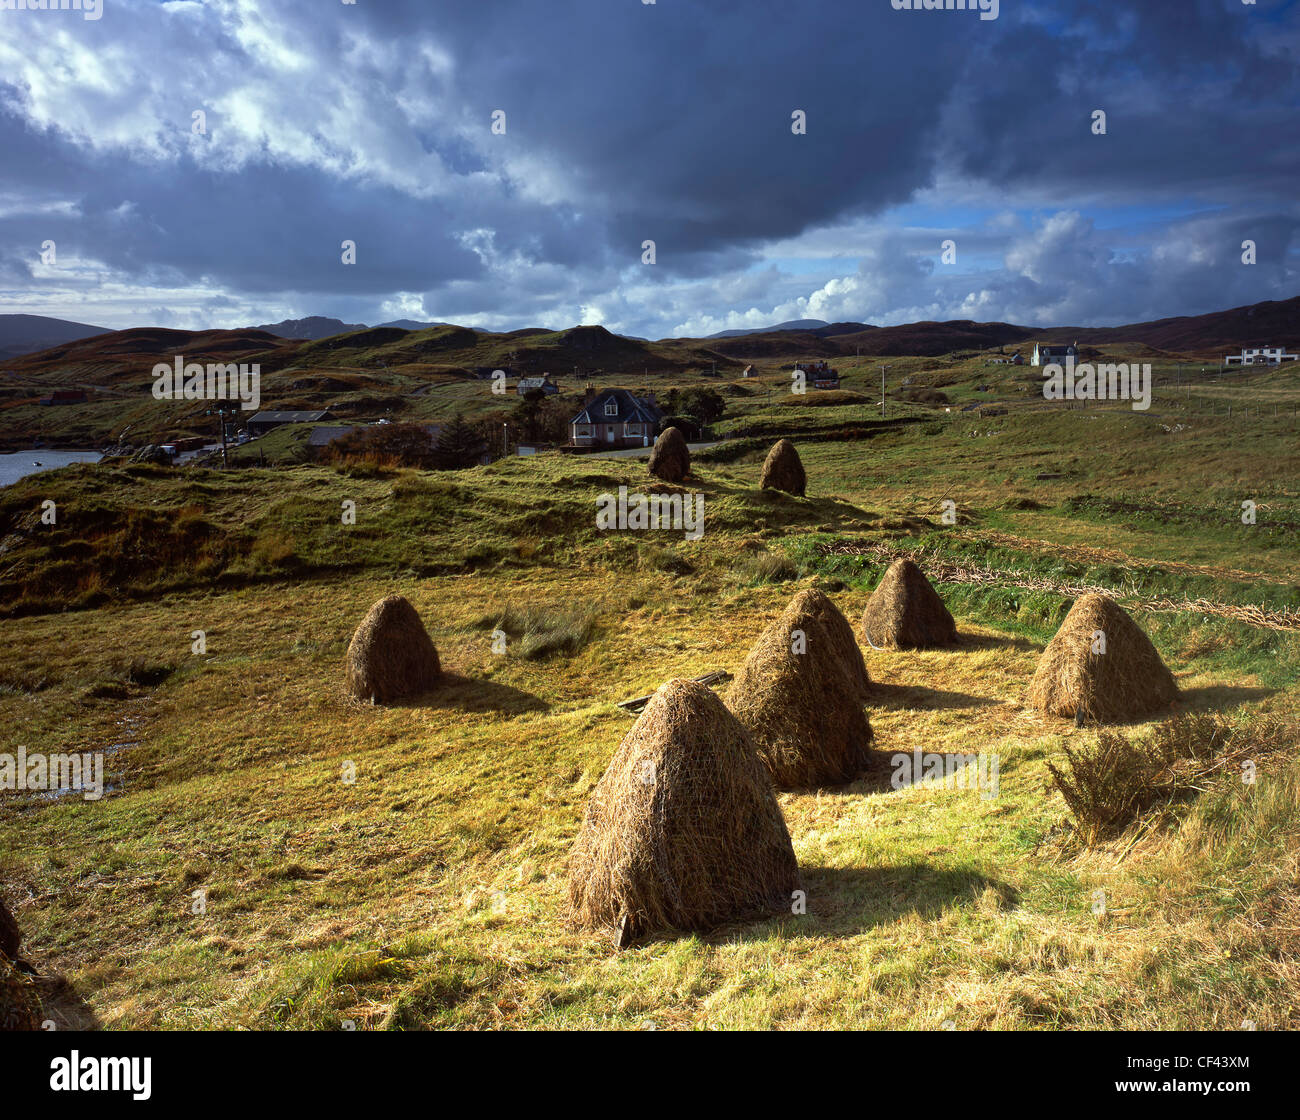 View over traditional hand built haystacks in a field towards the remote village of Tarbert on the Isle of Harris. Stock Photo